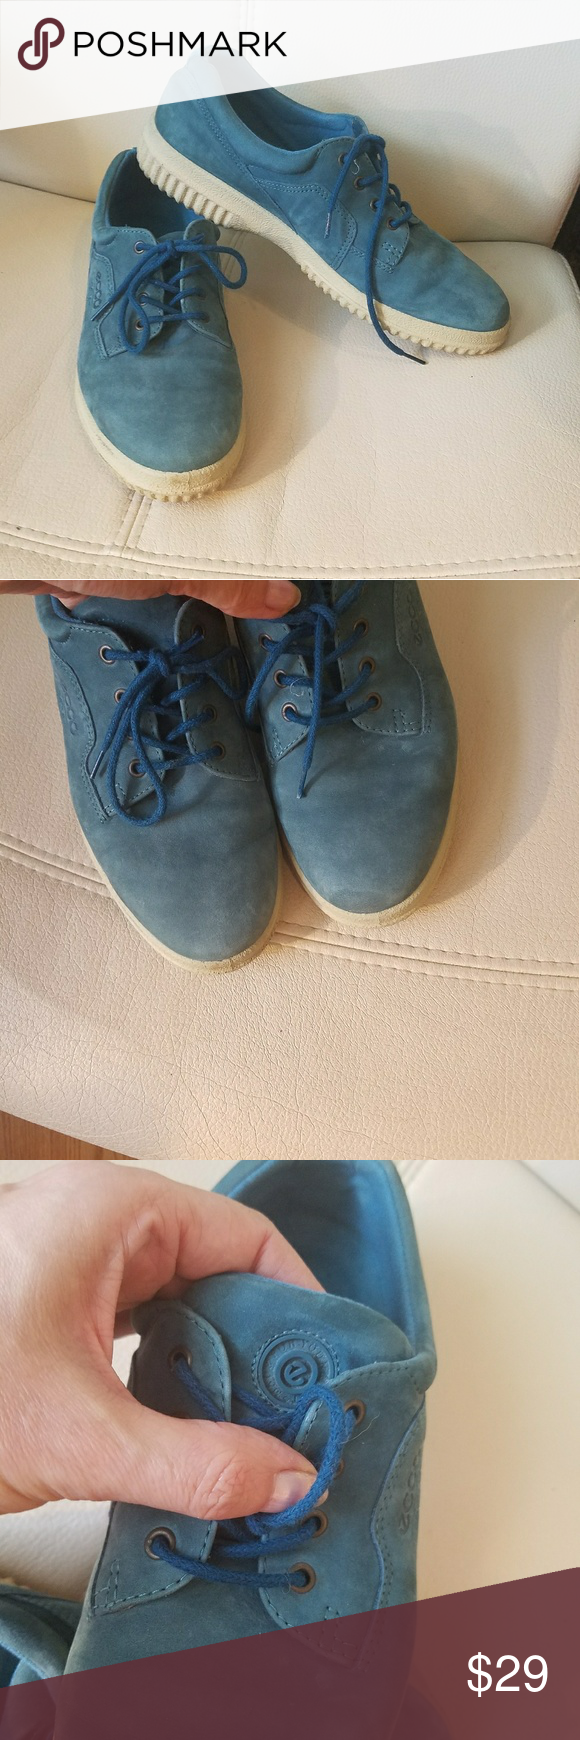 95059c0c594ad Ecco soft shoes size 38 In great Pre owned condition Genuine suede ...